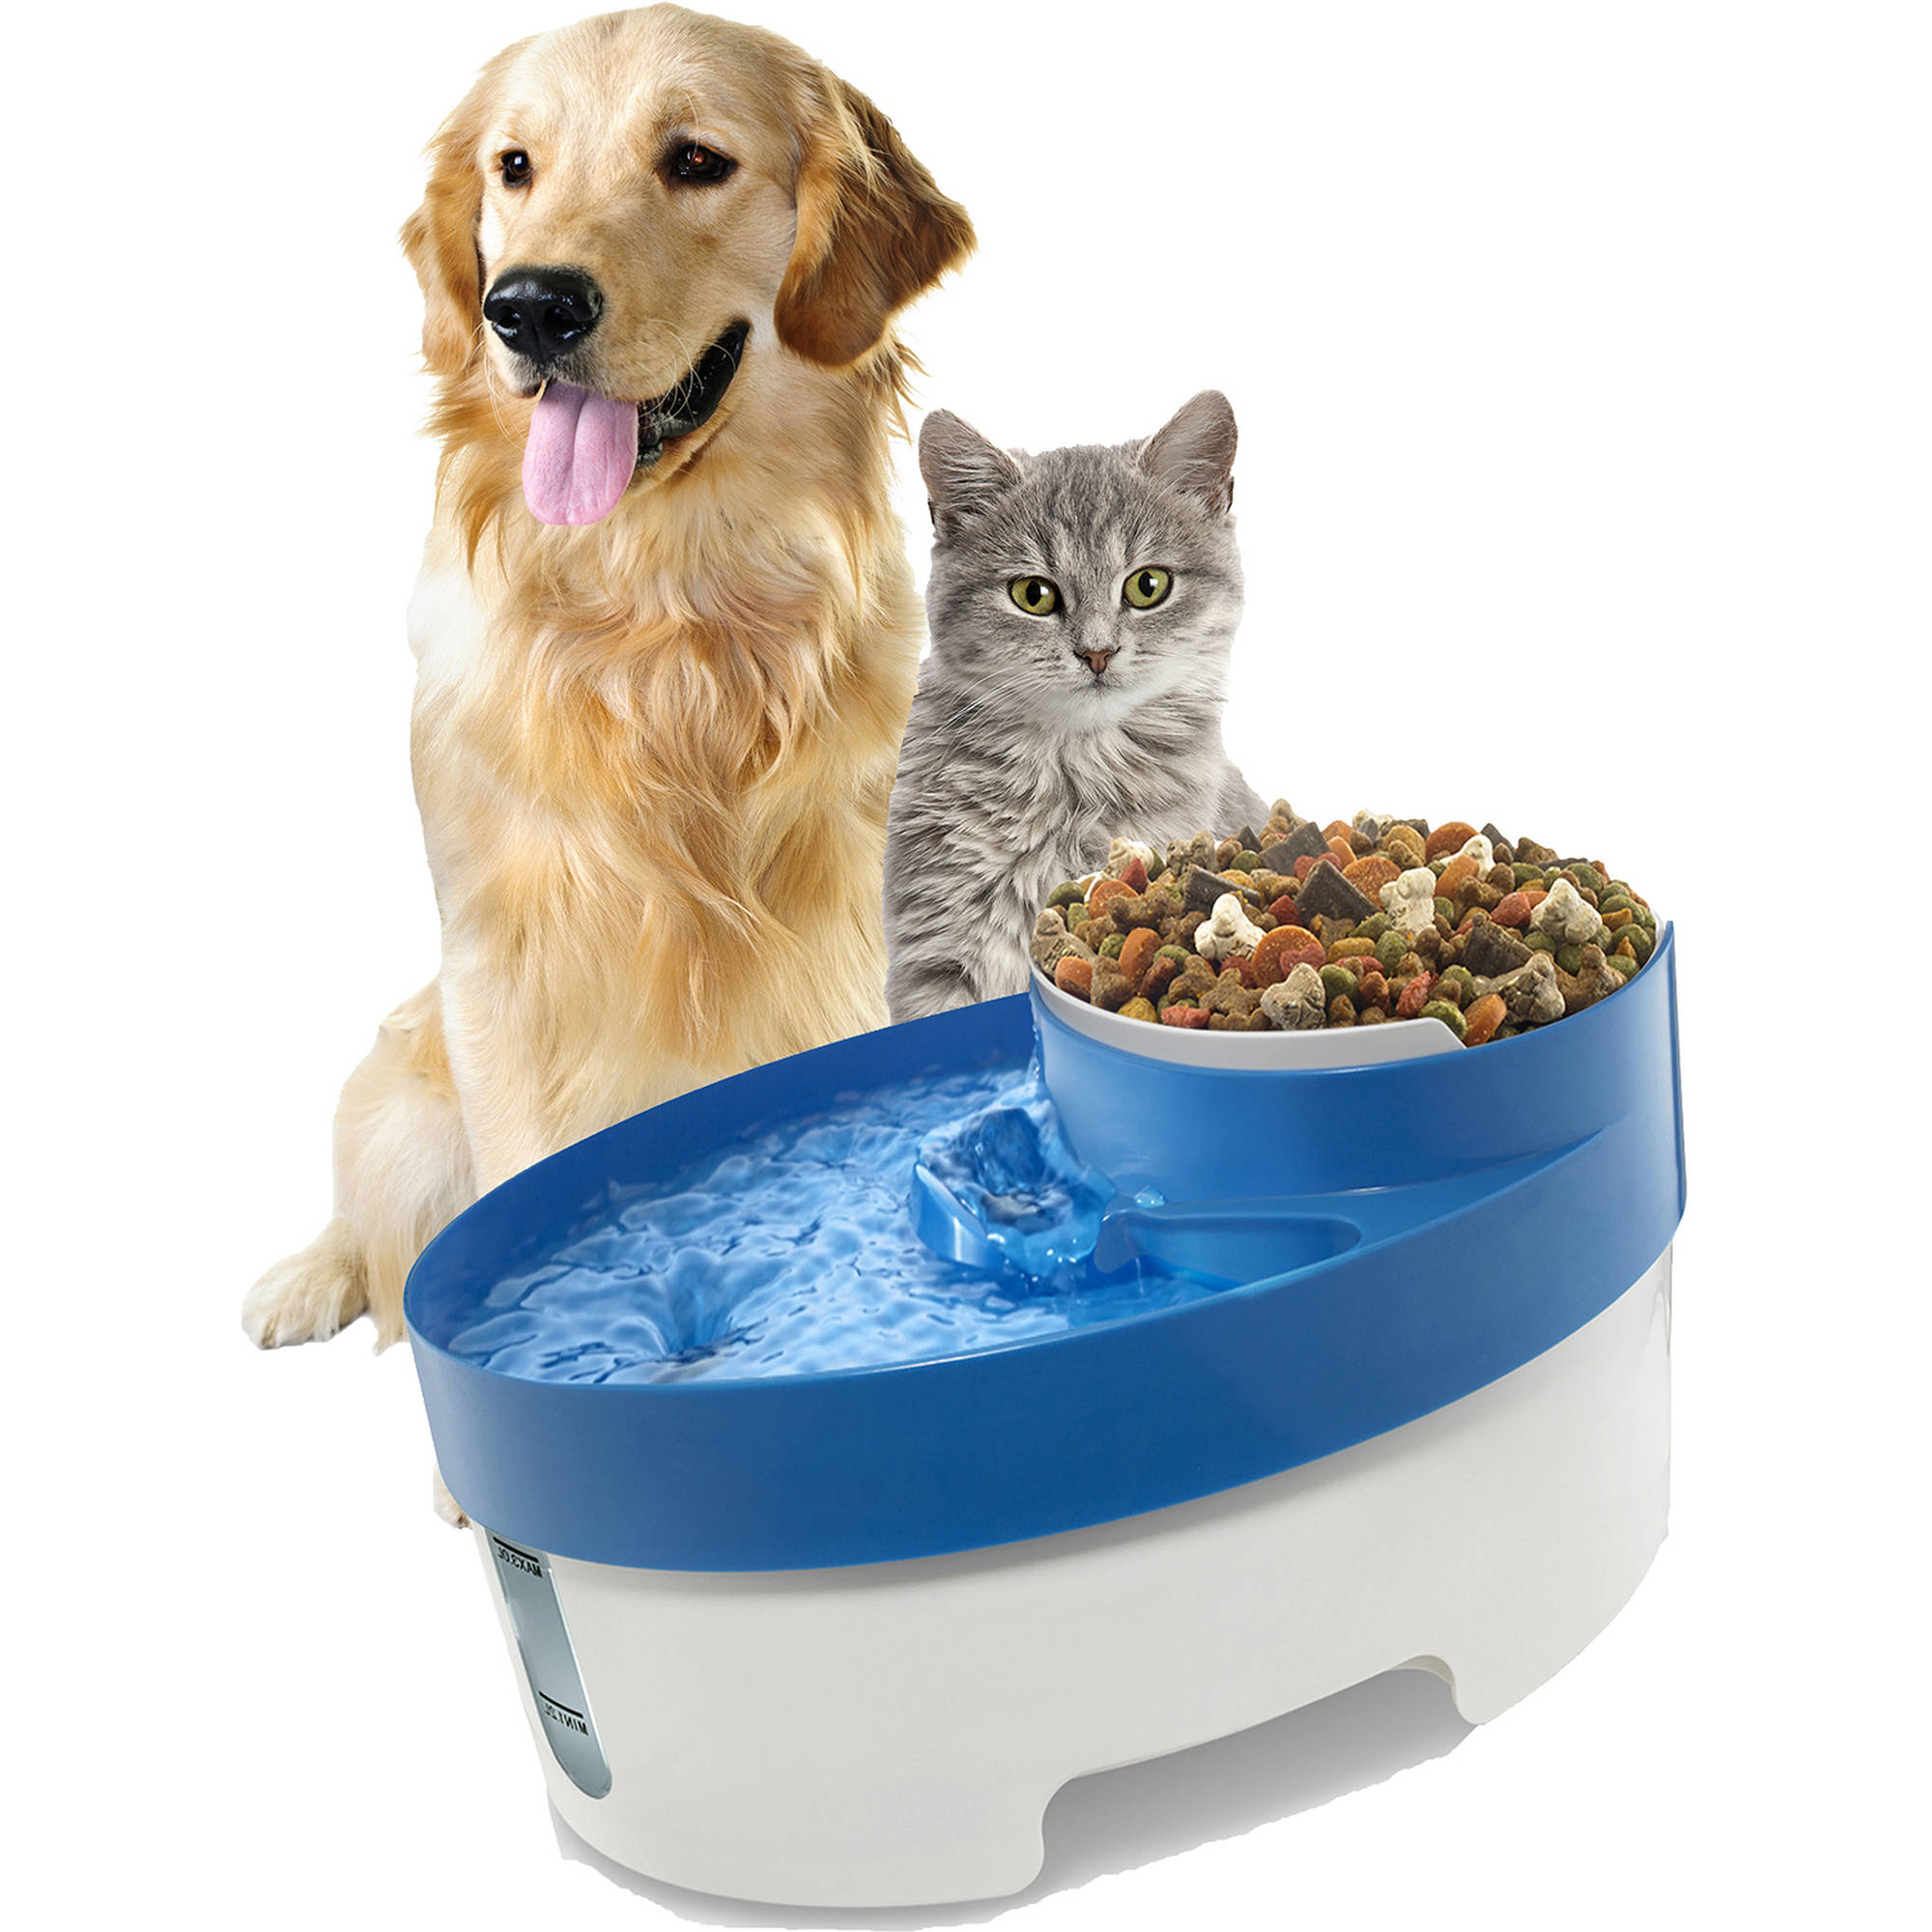 Oxgord Pet Fountain Water and Food Bowl Feeder with Water Filter